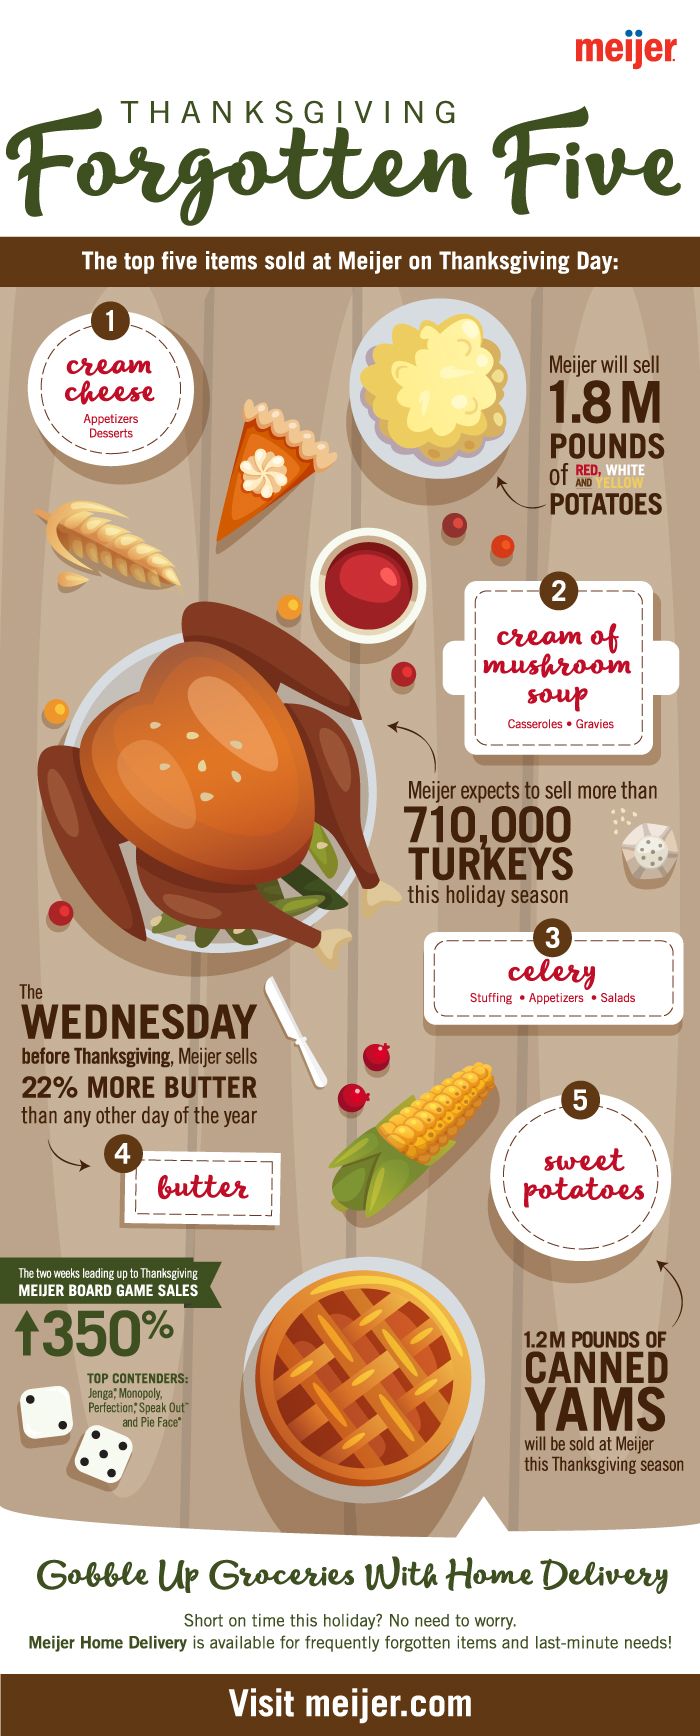 Meijer 2017 Turkey Infographic.jpg